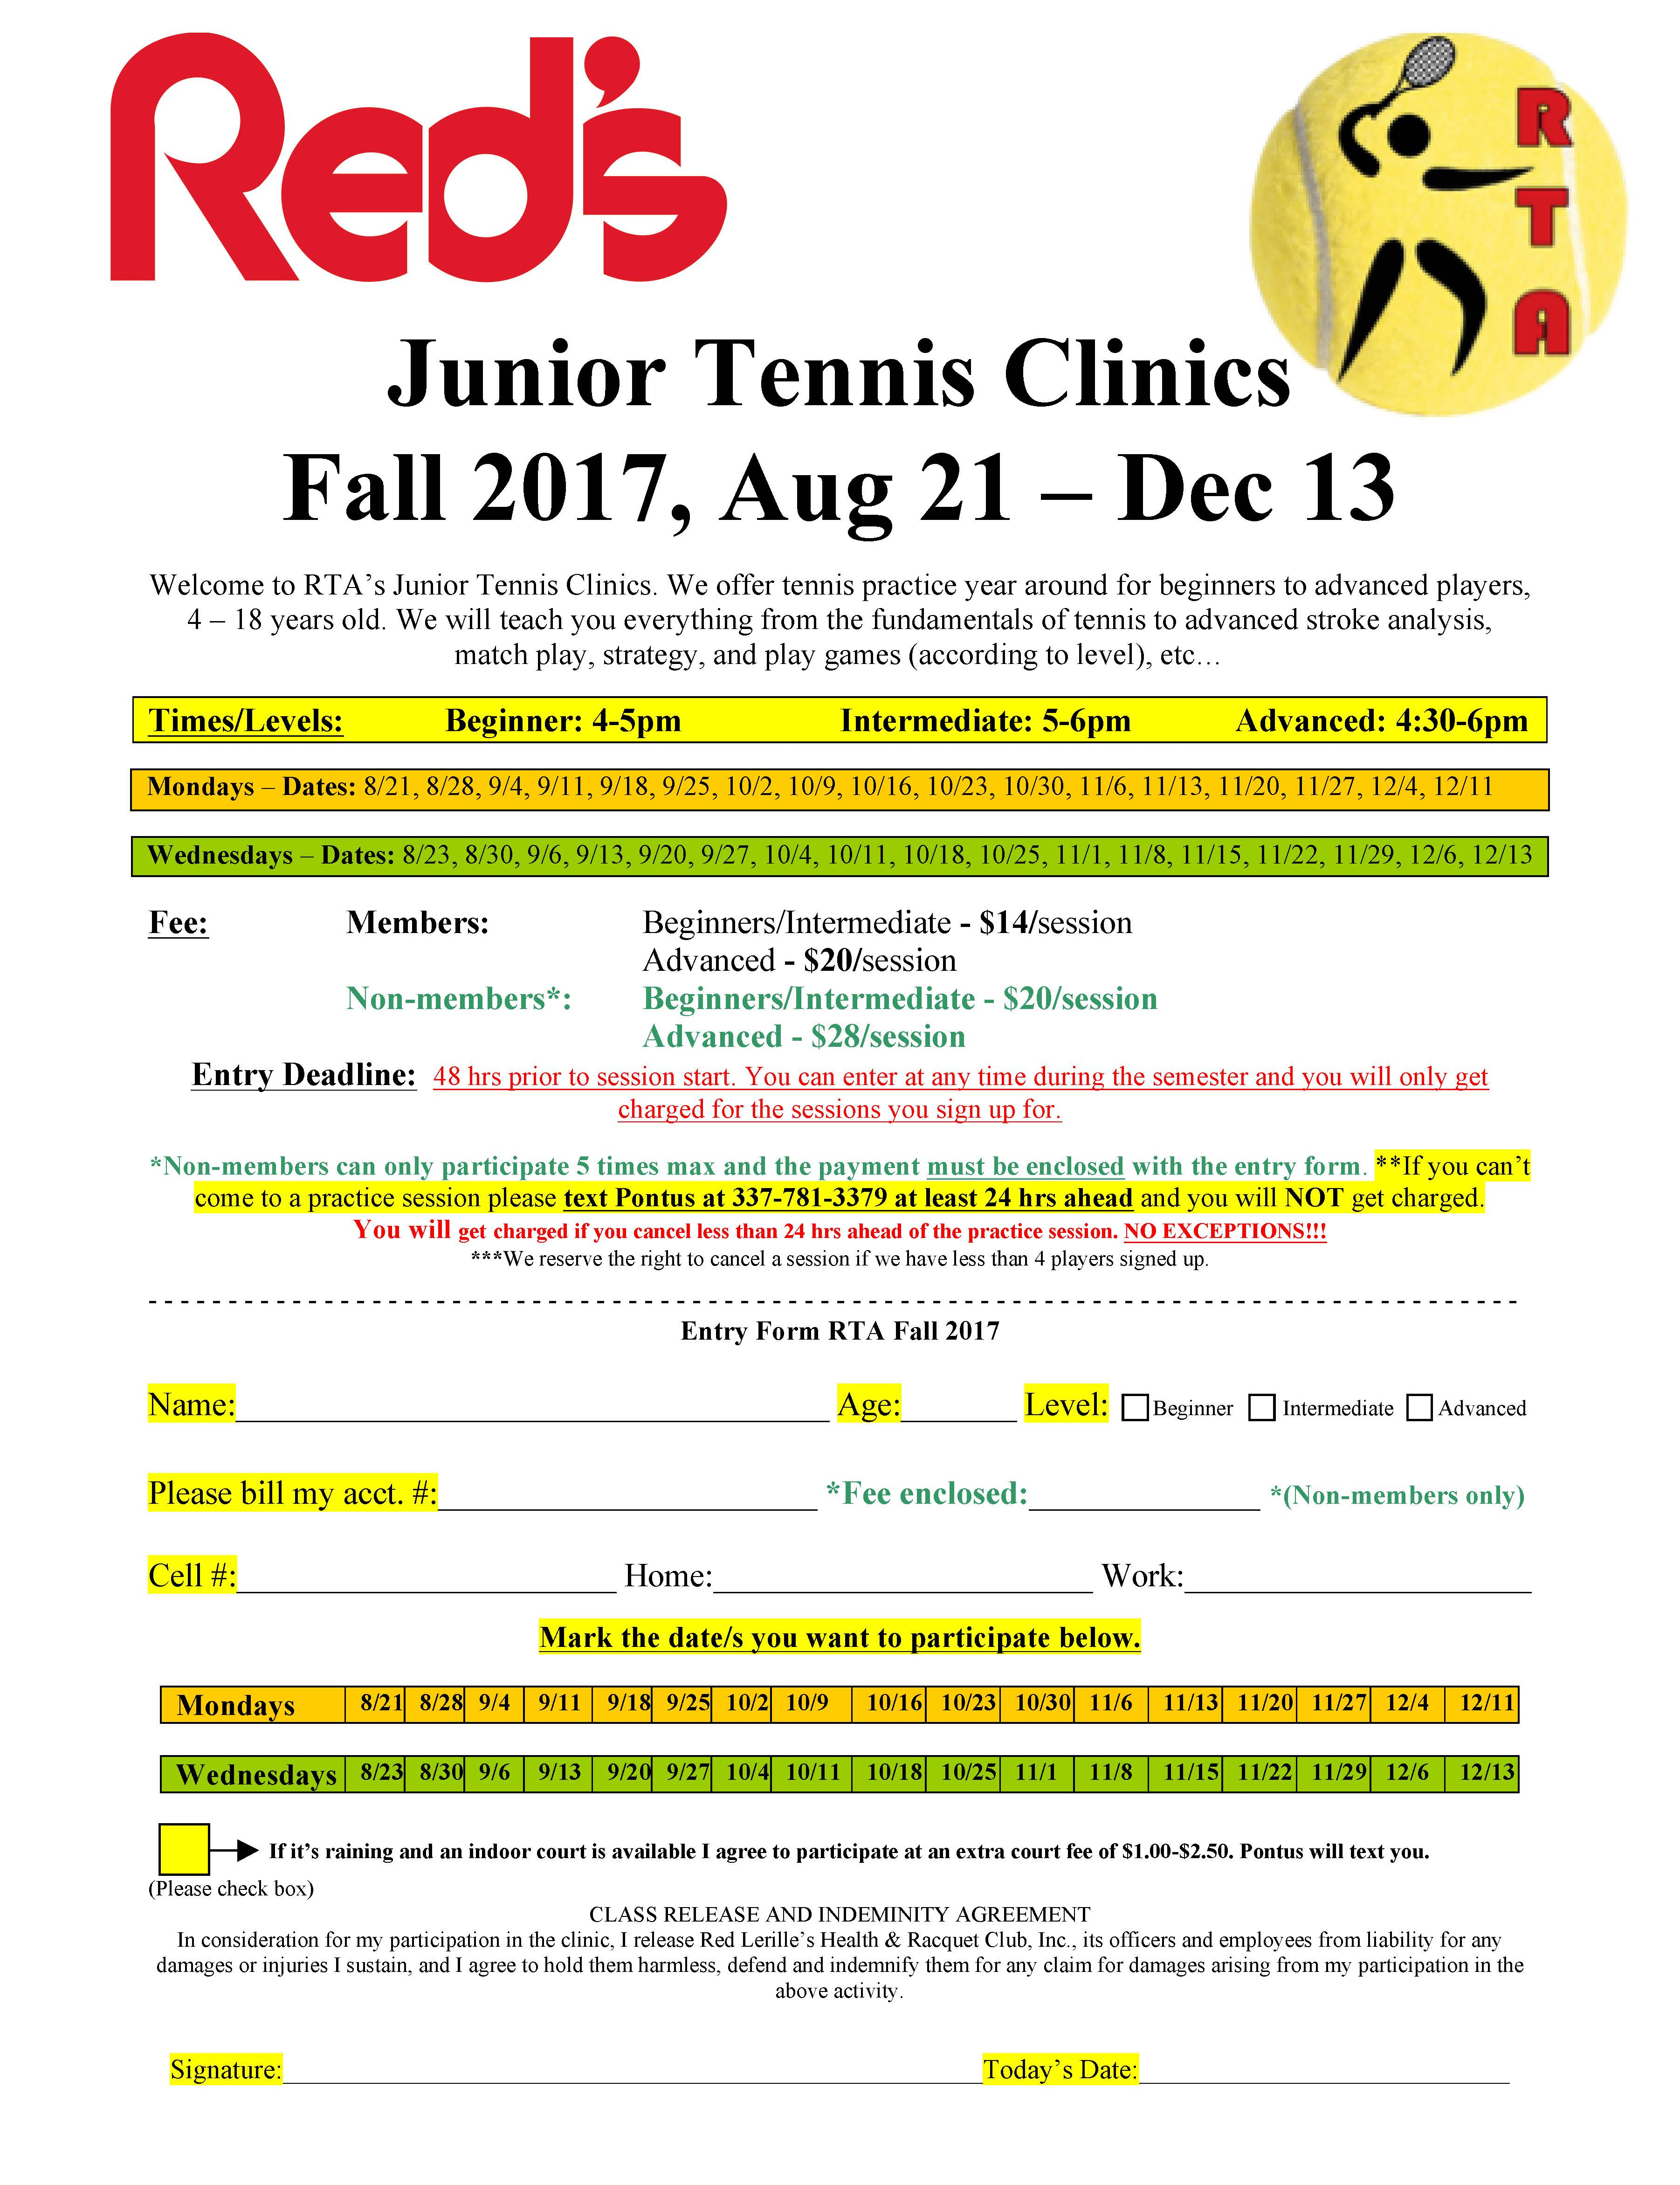 RTA Junior Tennis Clinics at Red's in Fall 2017>